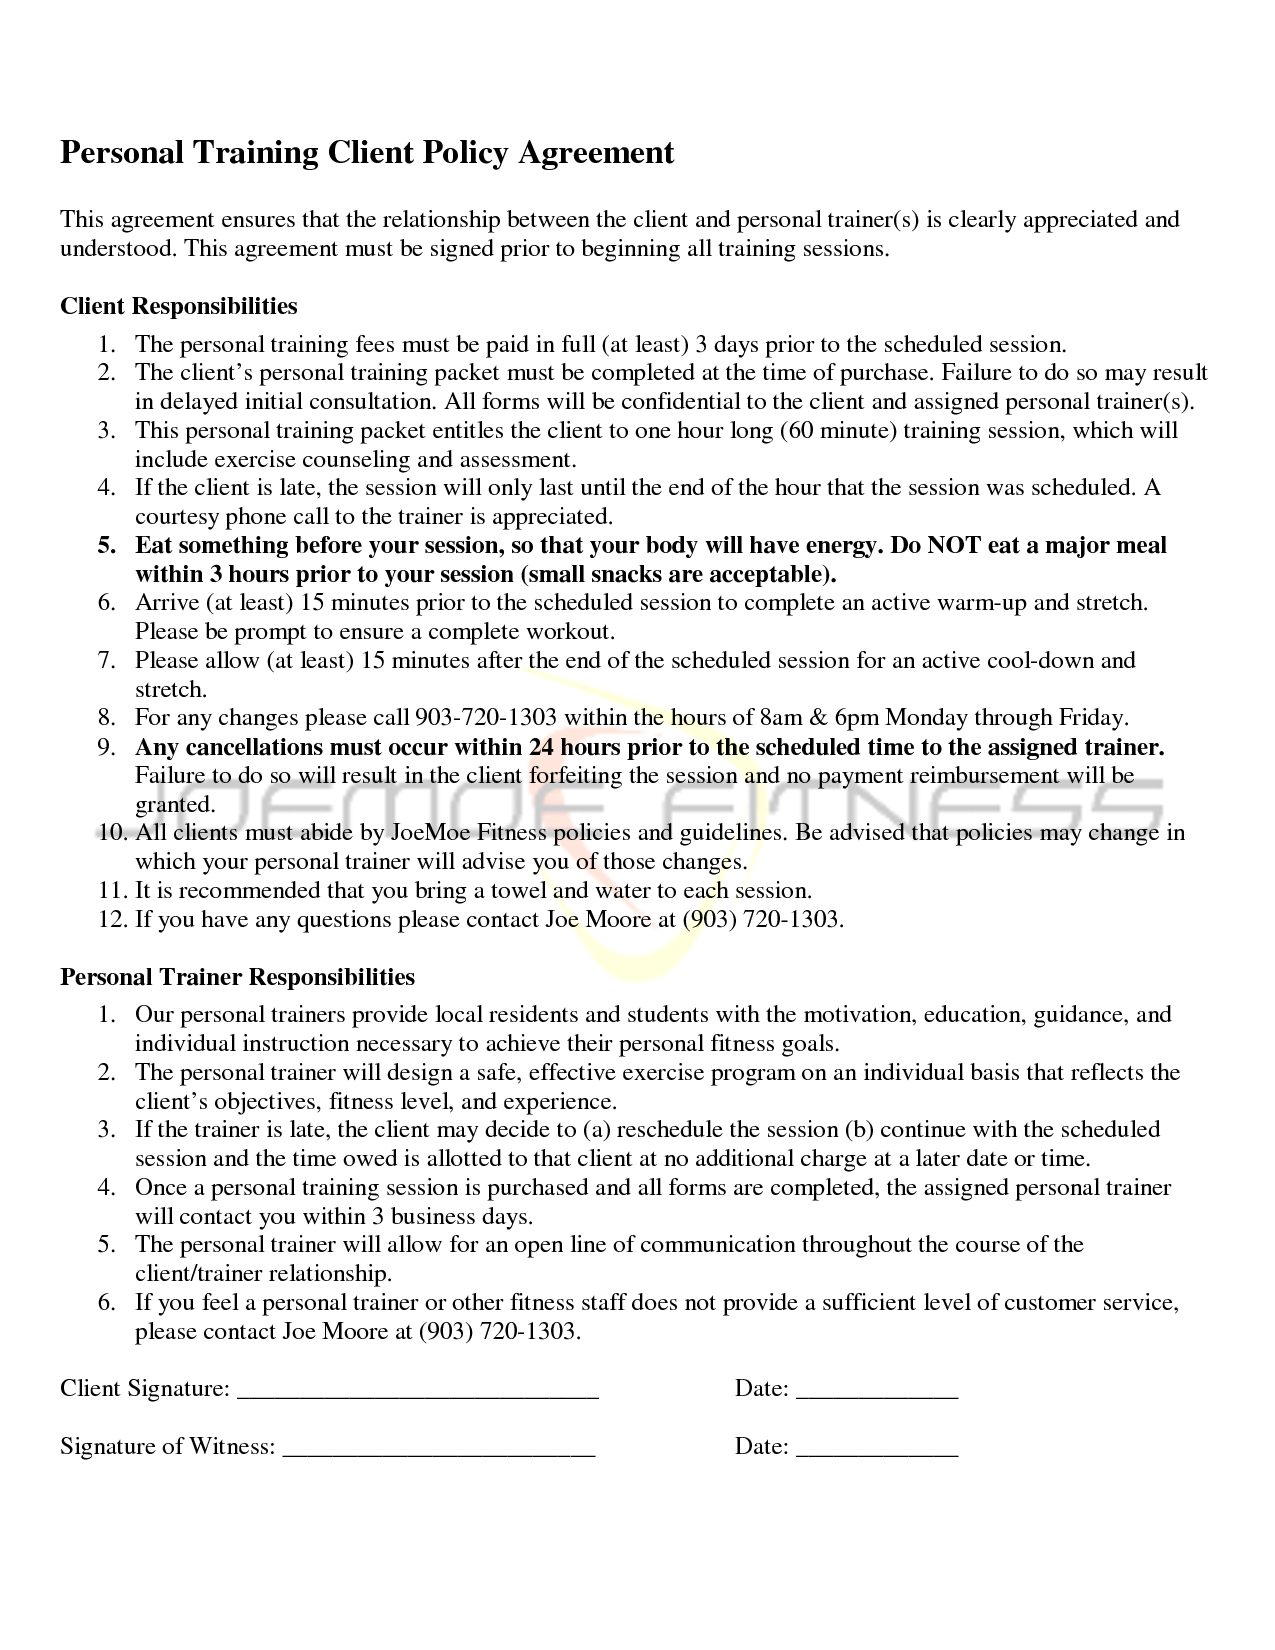 Personal training agreement free printable documents for Personal trainer contract templates